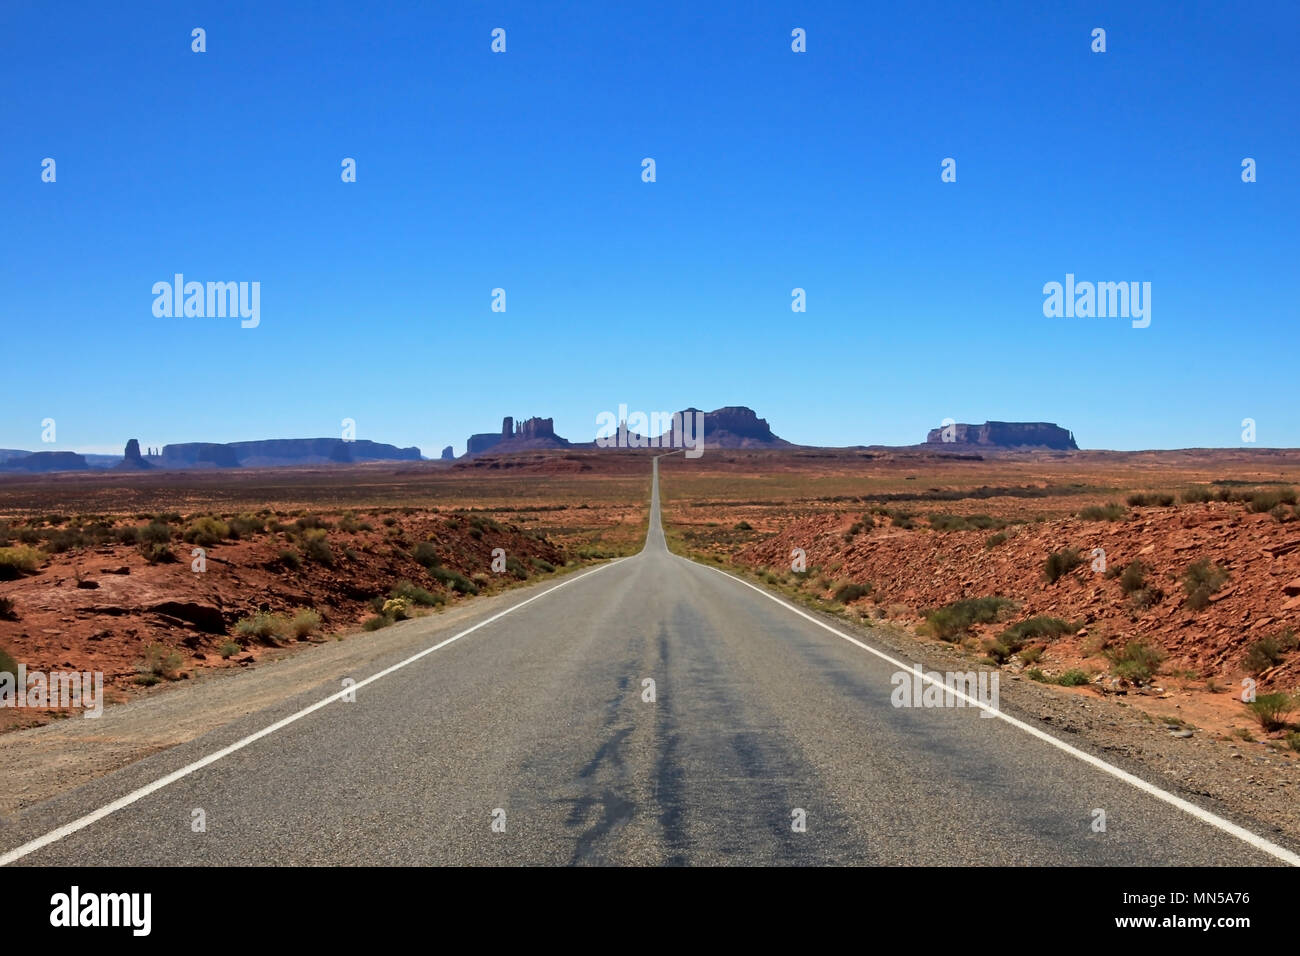 Classic view of road running through Monument Valley, Utah, USA - Stock Image